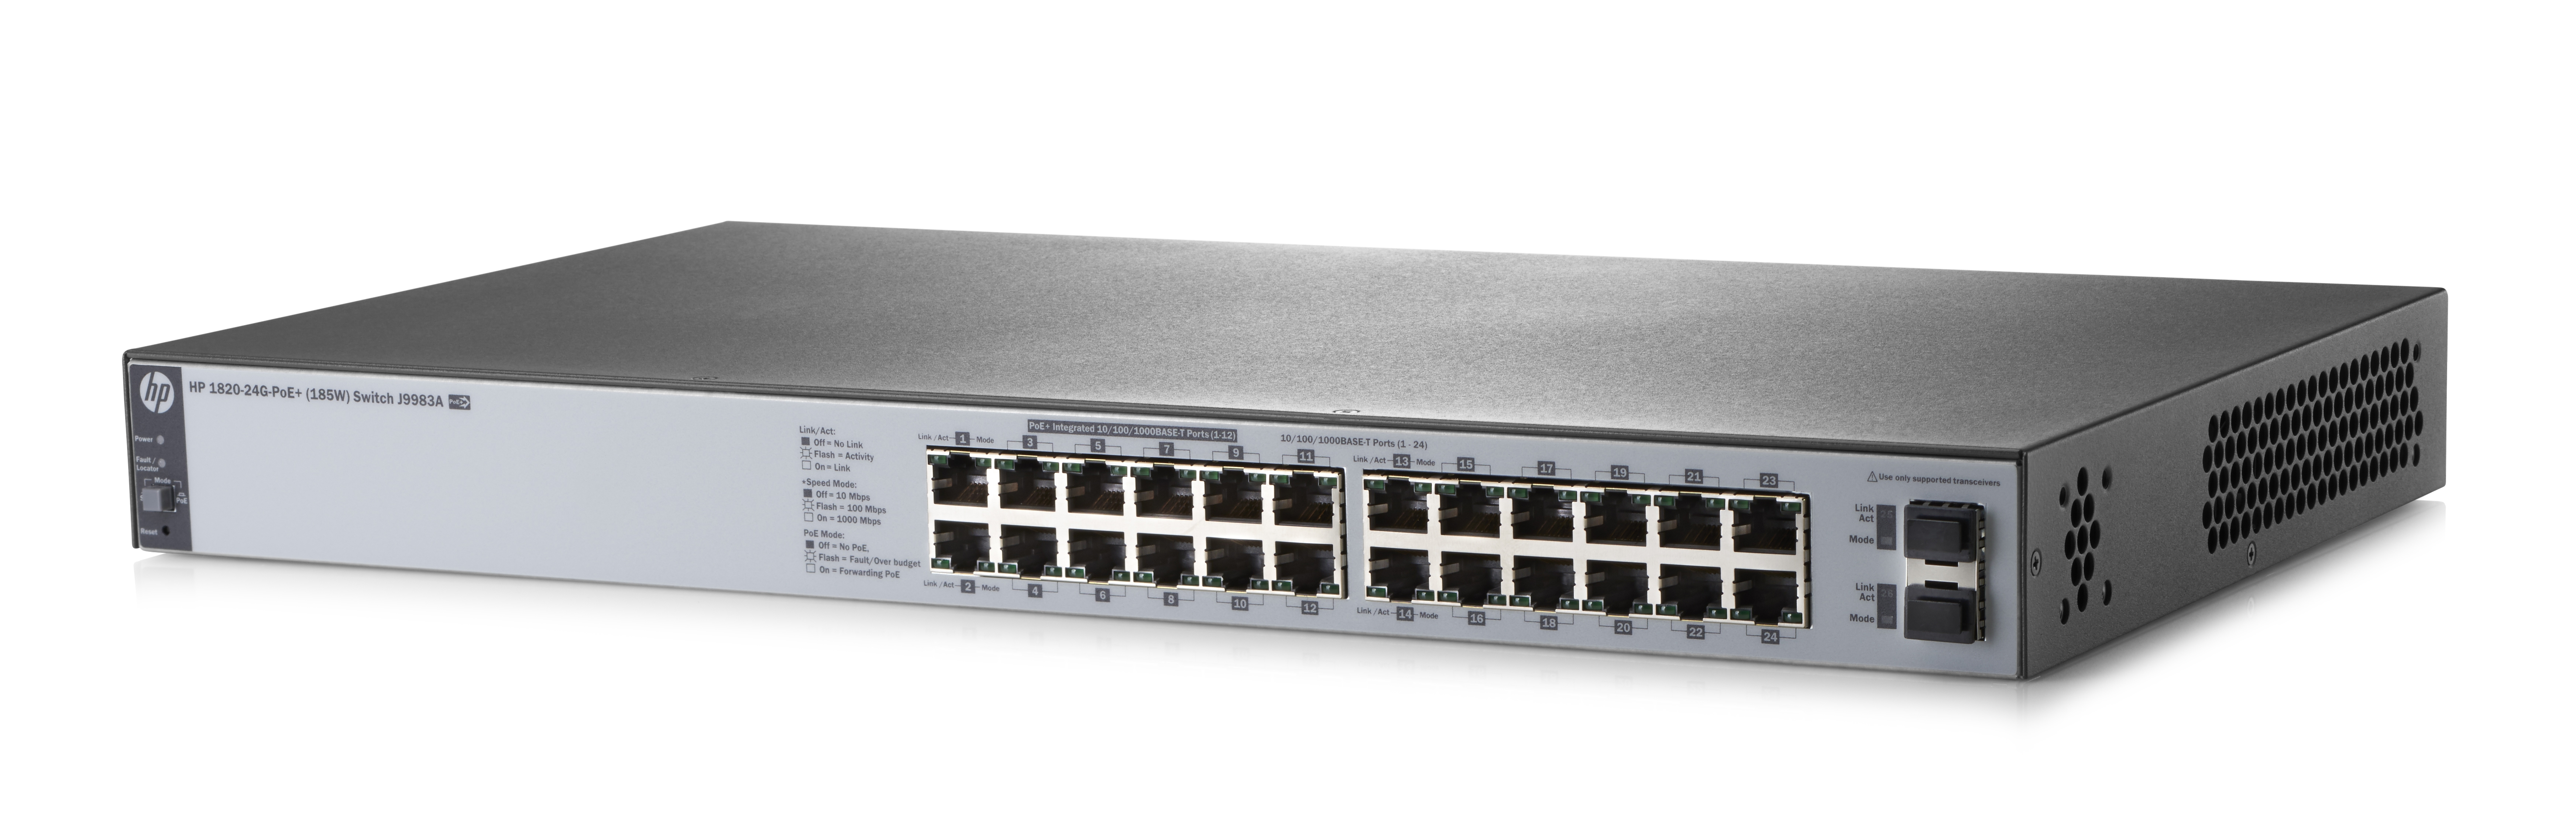 HP Enterprise 1820-24G-PoE+ (185W) - Managed - L2 - Gigabit Ethernet (10/100/1000) - Power over Ethernet (PoE) - Rack-Einbau - 1U